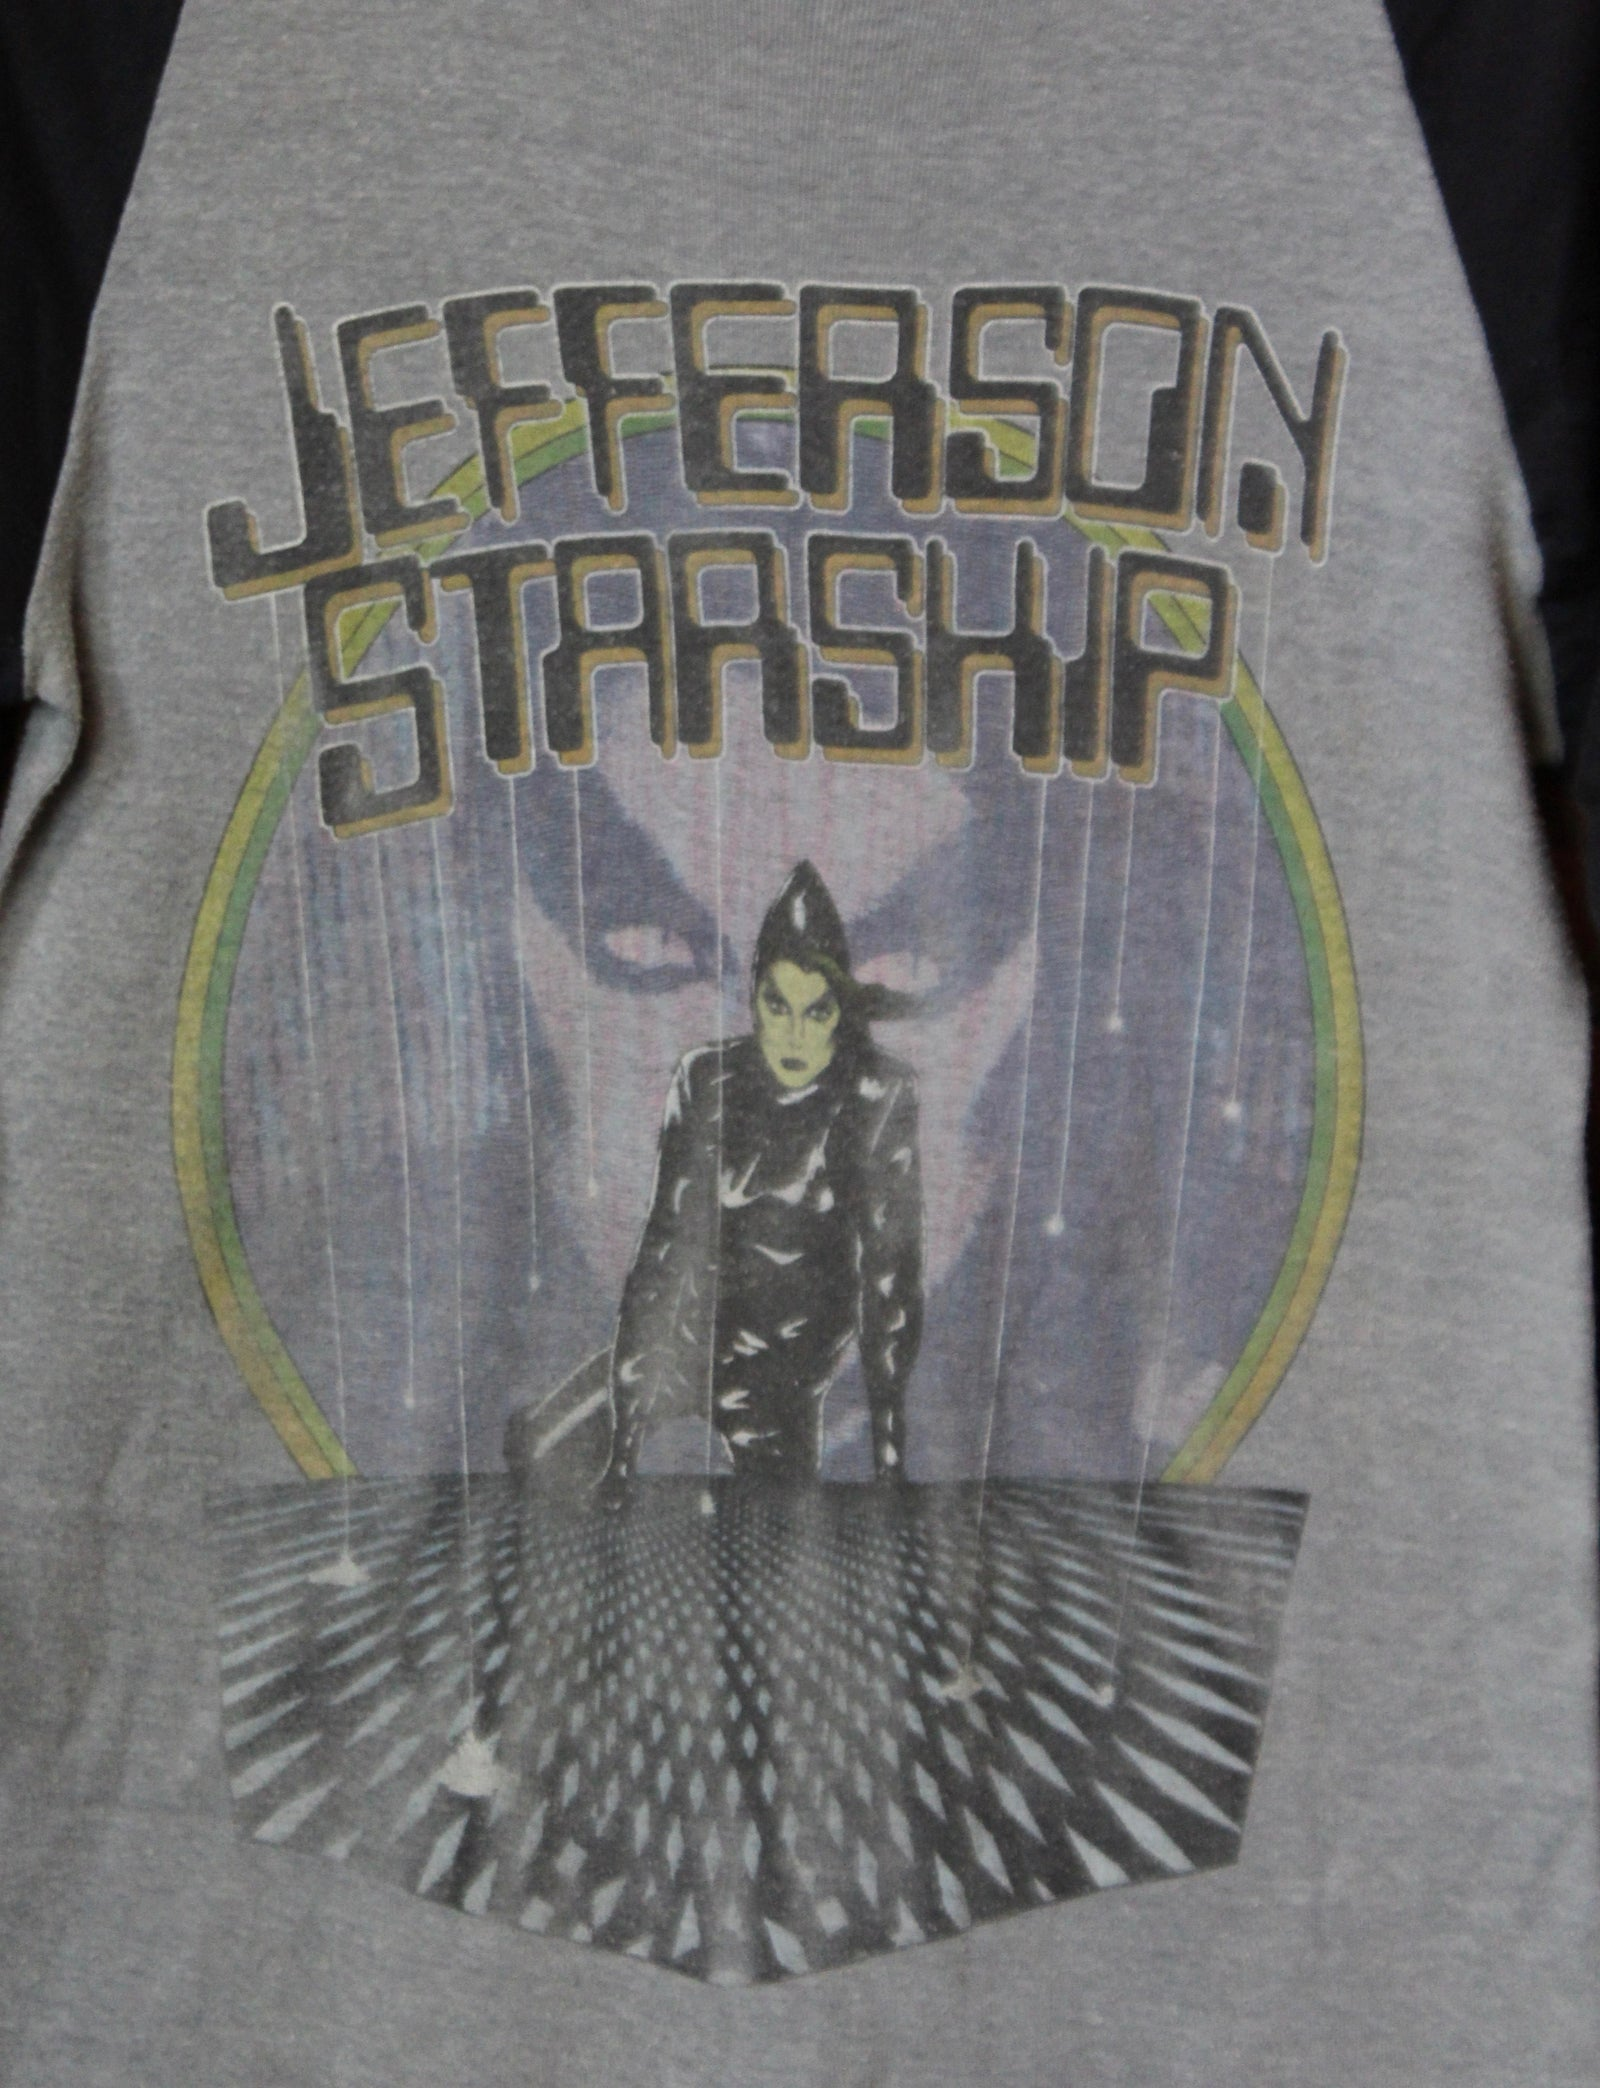 Vintage Jefferson Starship Concert T Shirt Modern Times Tour 1981 Jersey Medium